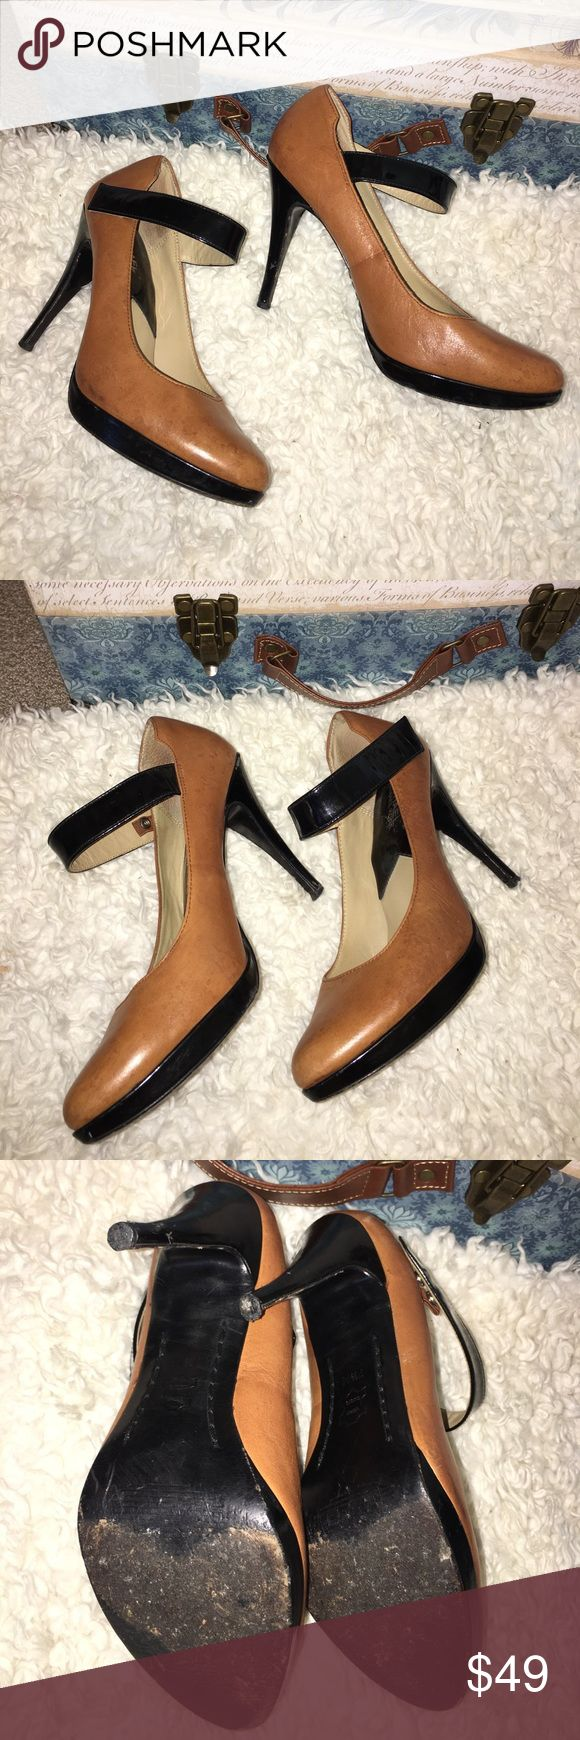 Michael Kors heels 7.5 One of my favorites ever! Only worn a couple of times. True size 7.5 just a little to snug for me but doable. Michael Kors Shoes Heels